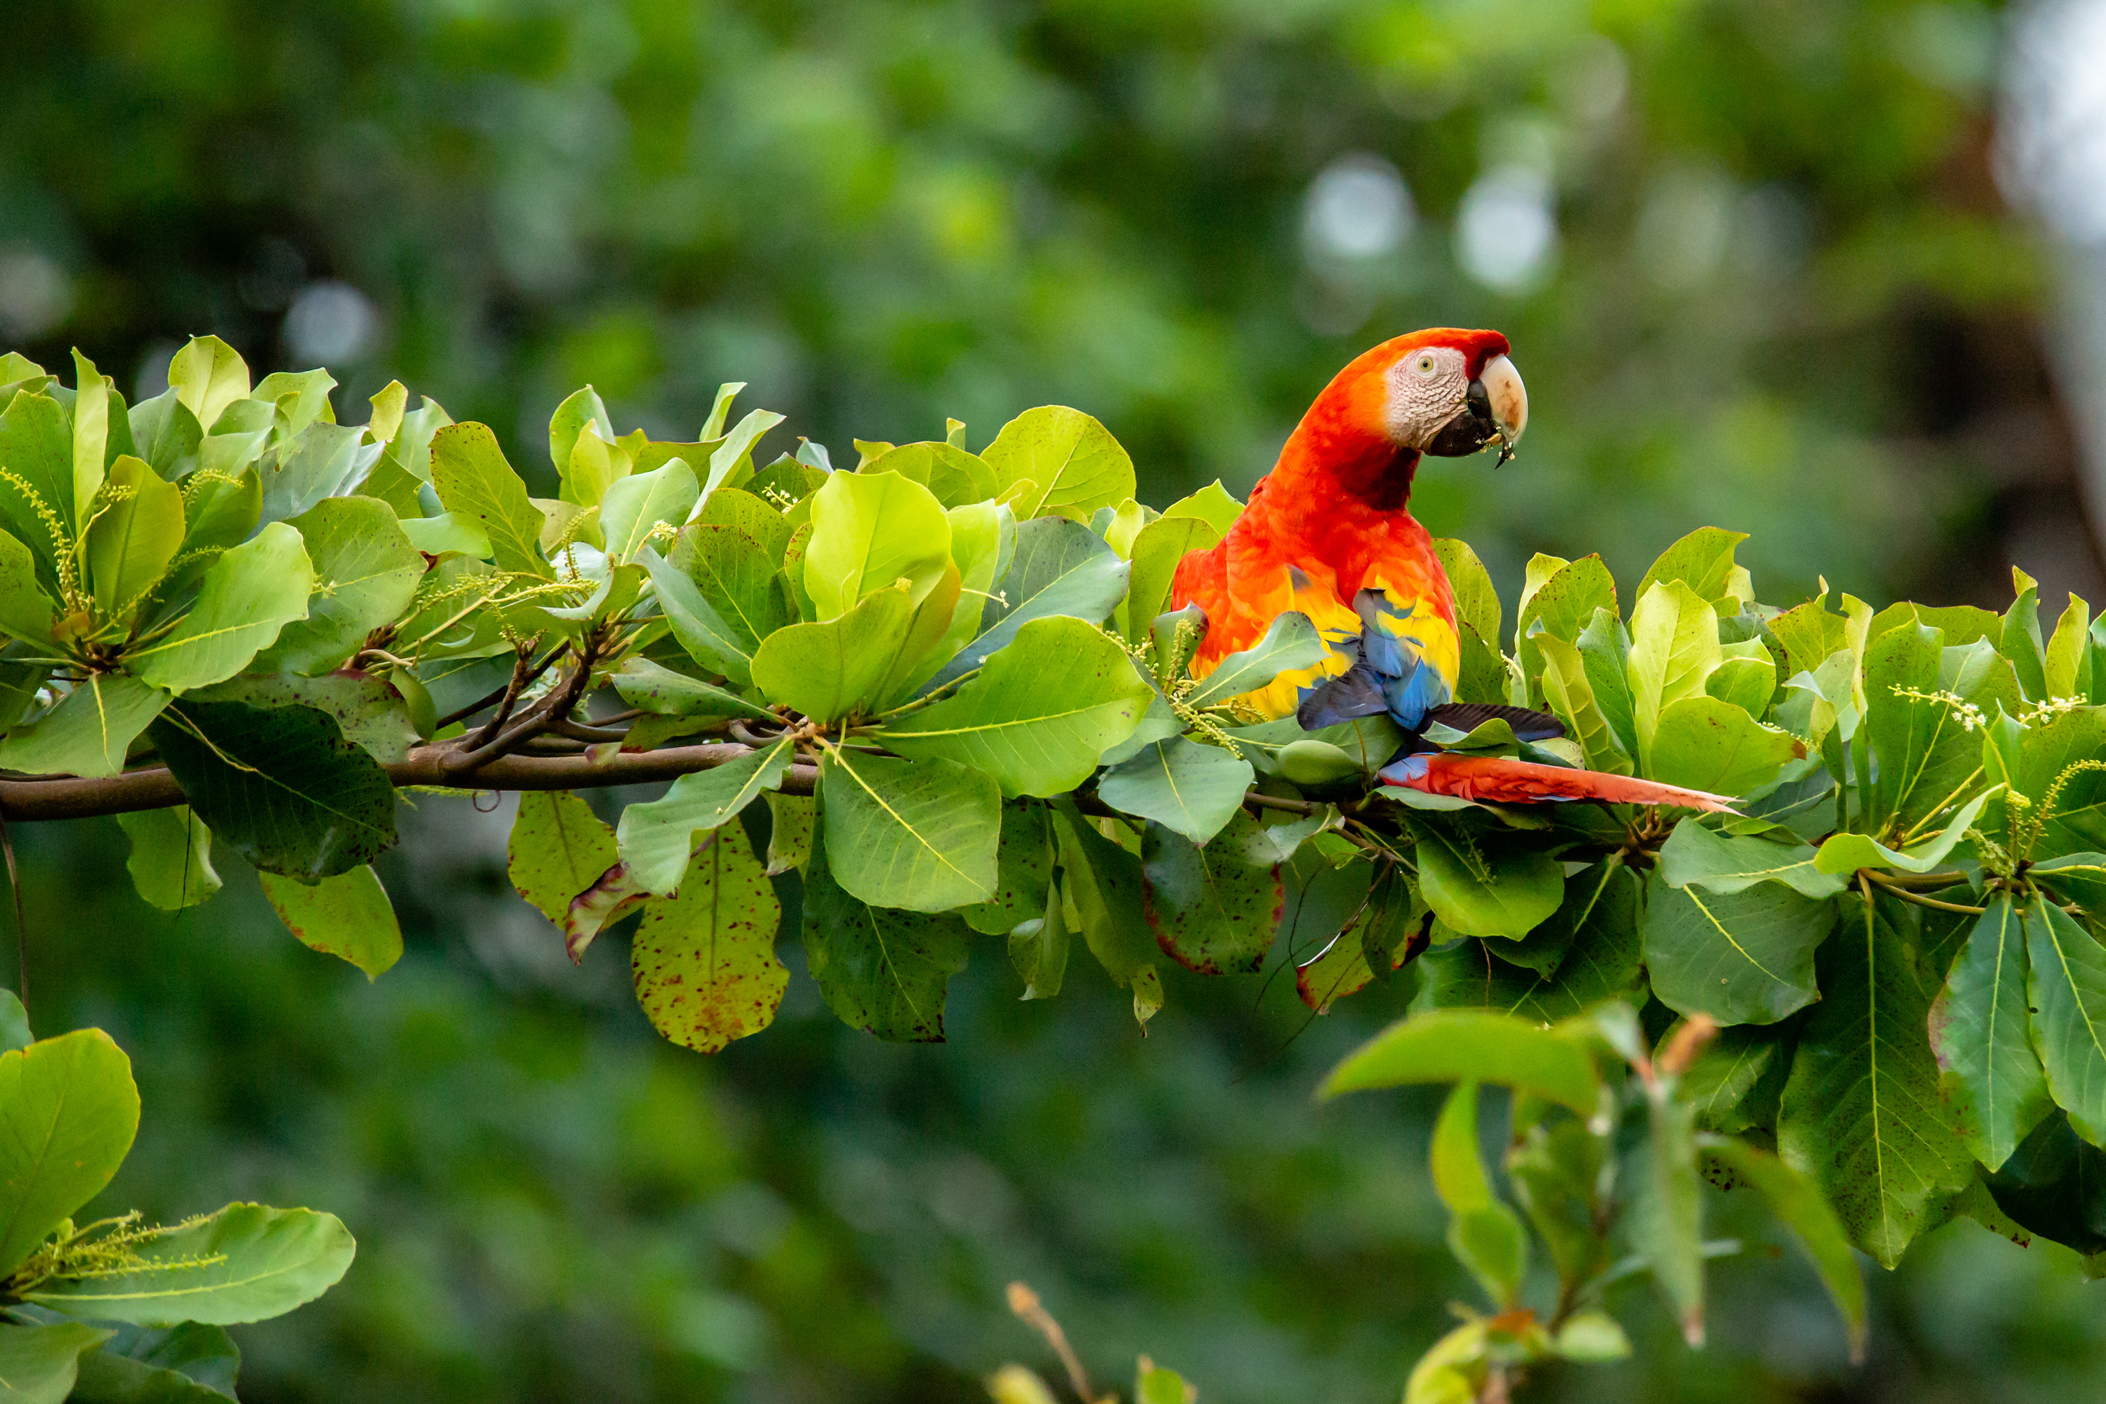 Scarlet Macaw in a Beach Almond Tree. Taken in Carate, Costa Rica. Photo by Ben Blankenship. ©2019